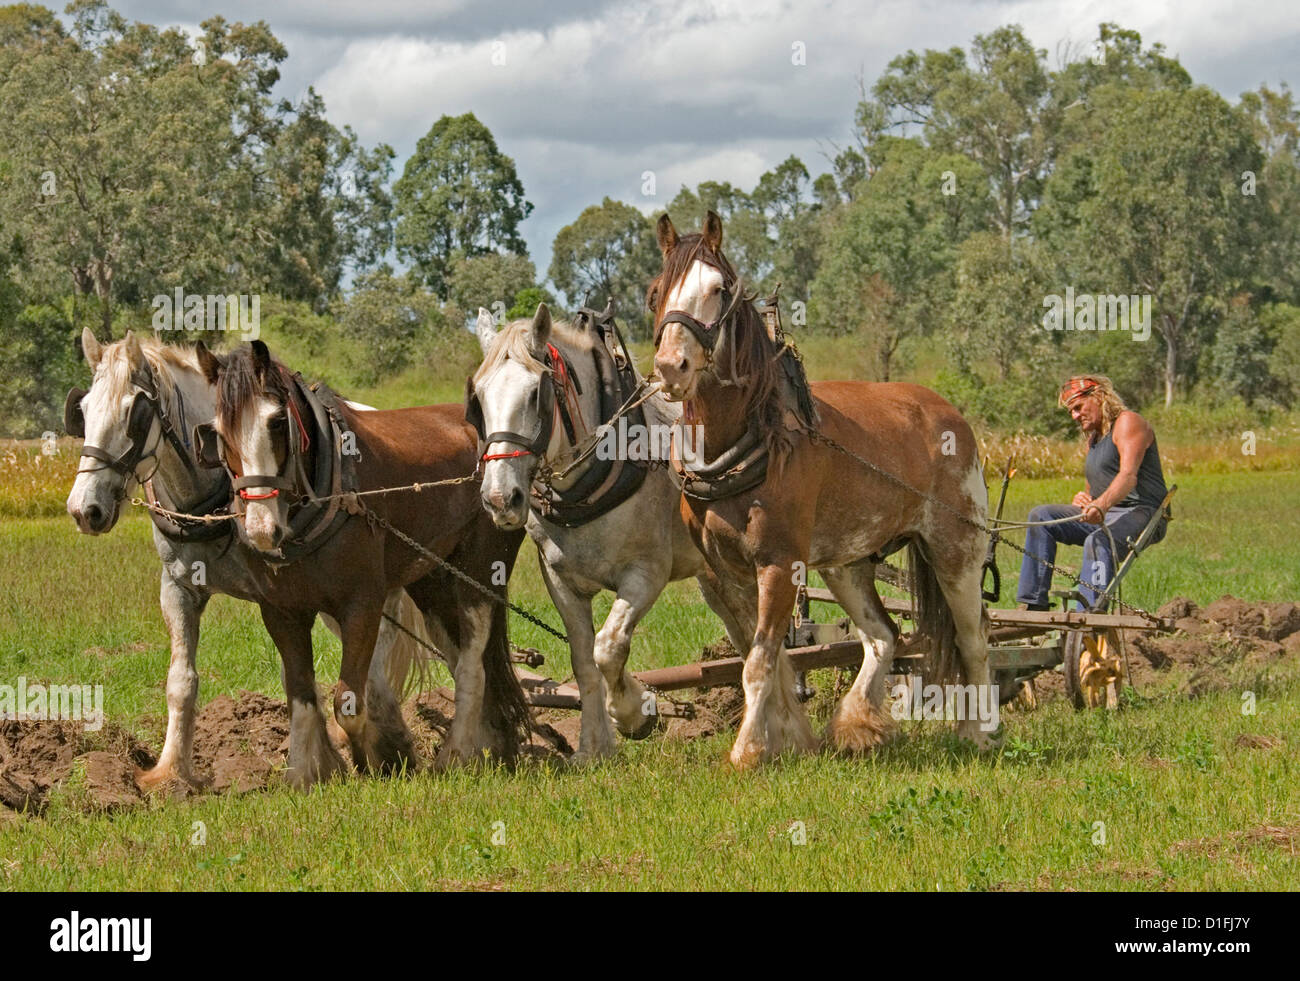 Team of four draft horses ploughing on a farm - Stock Image